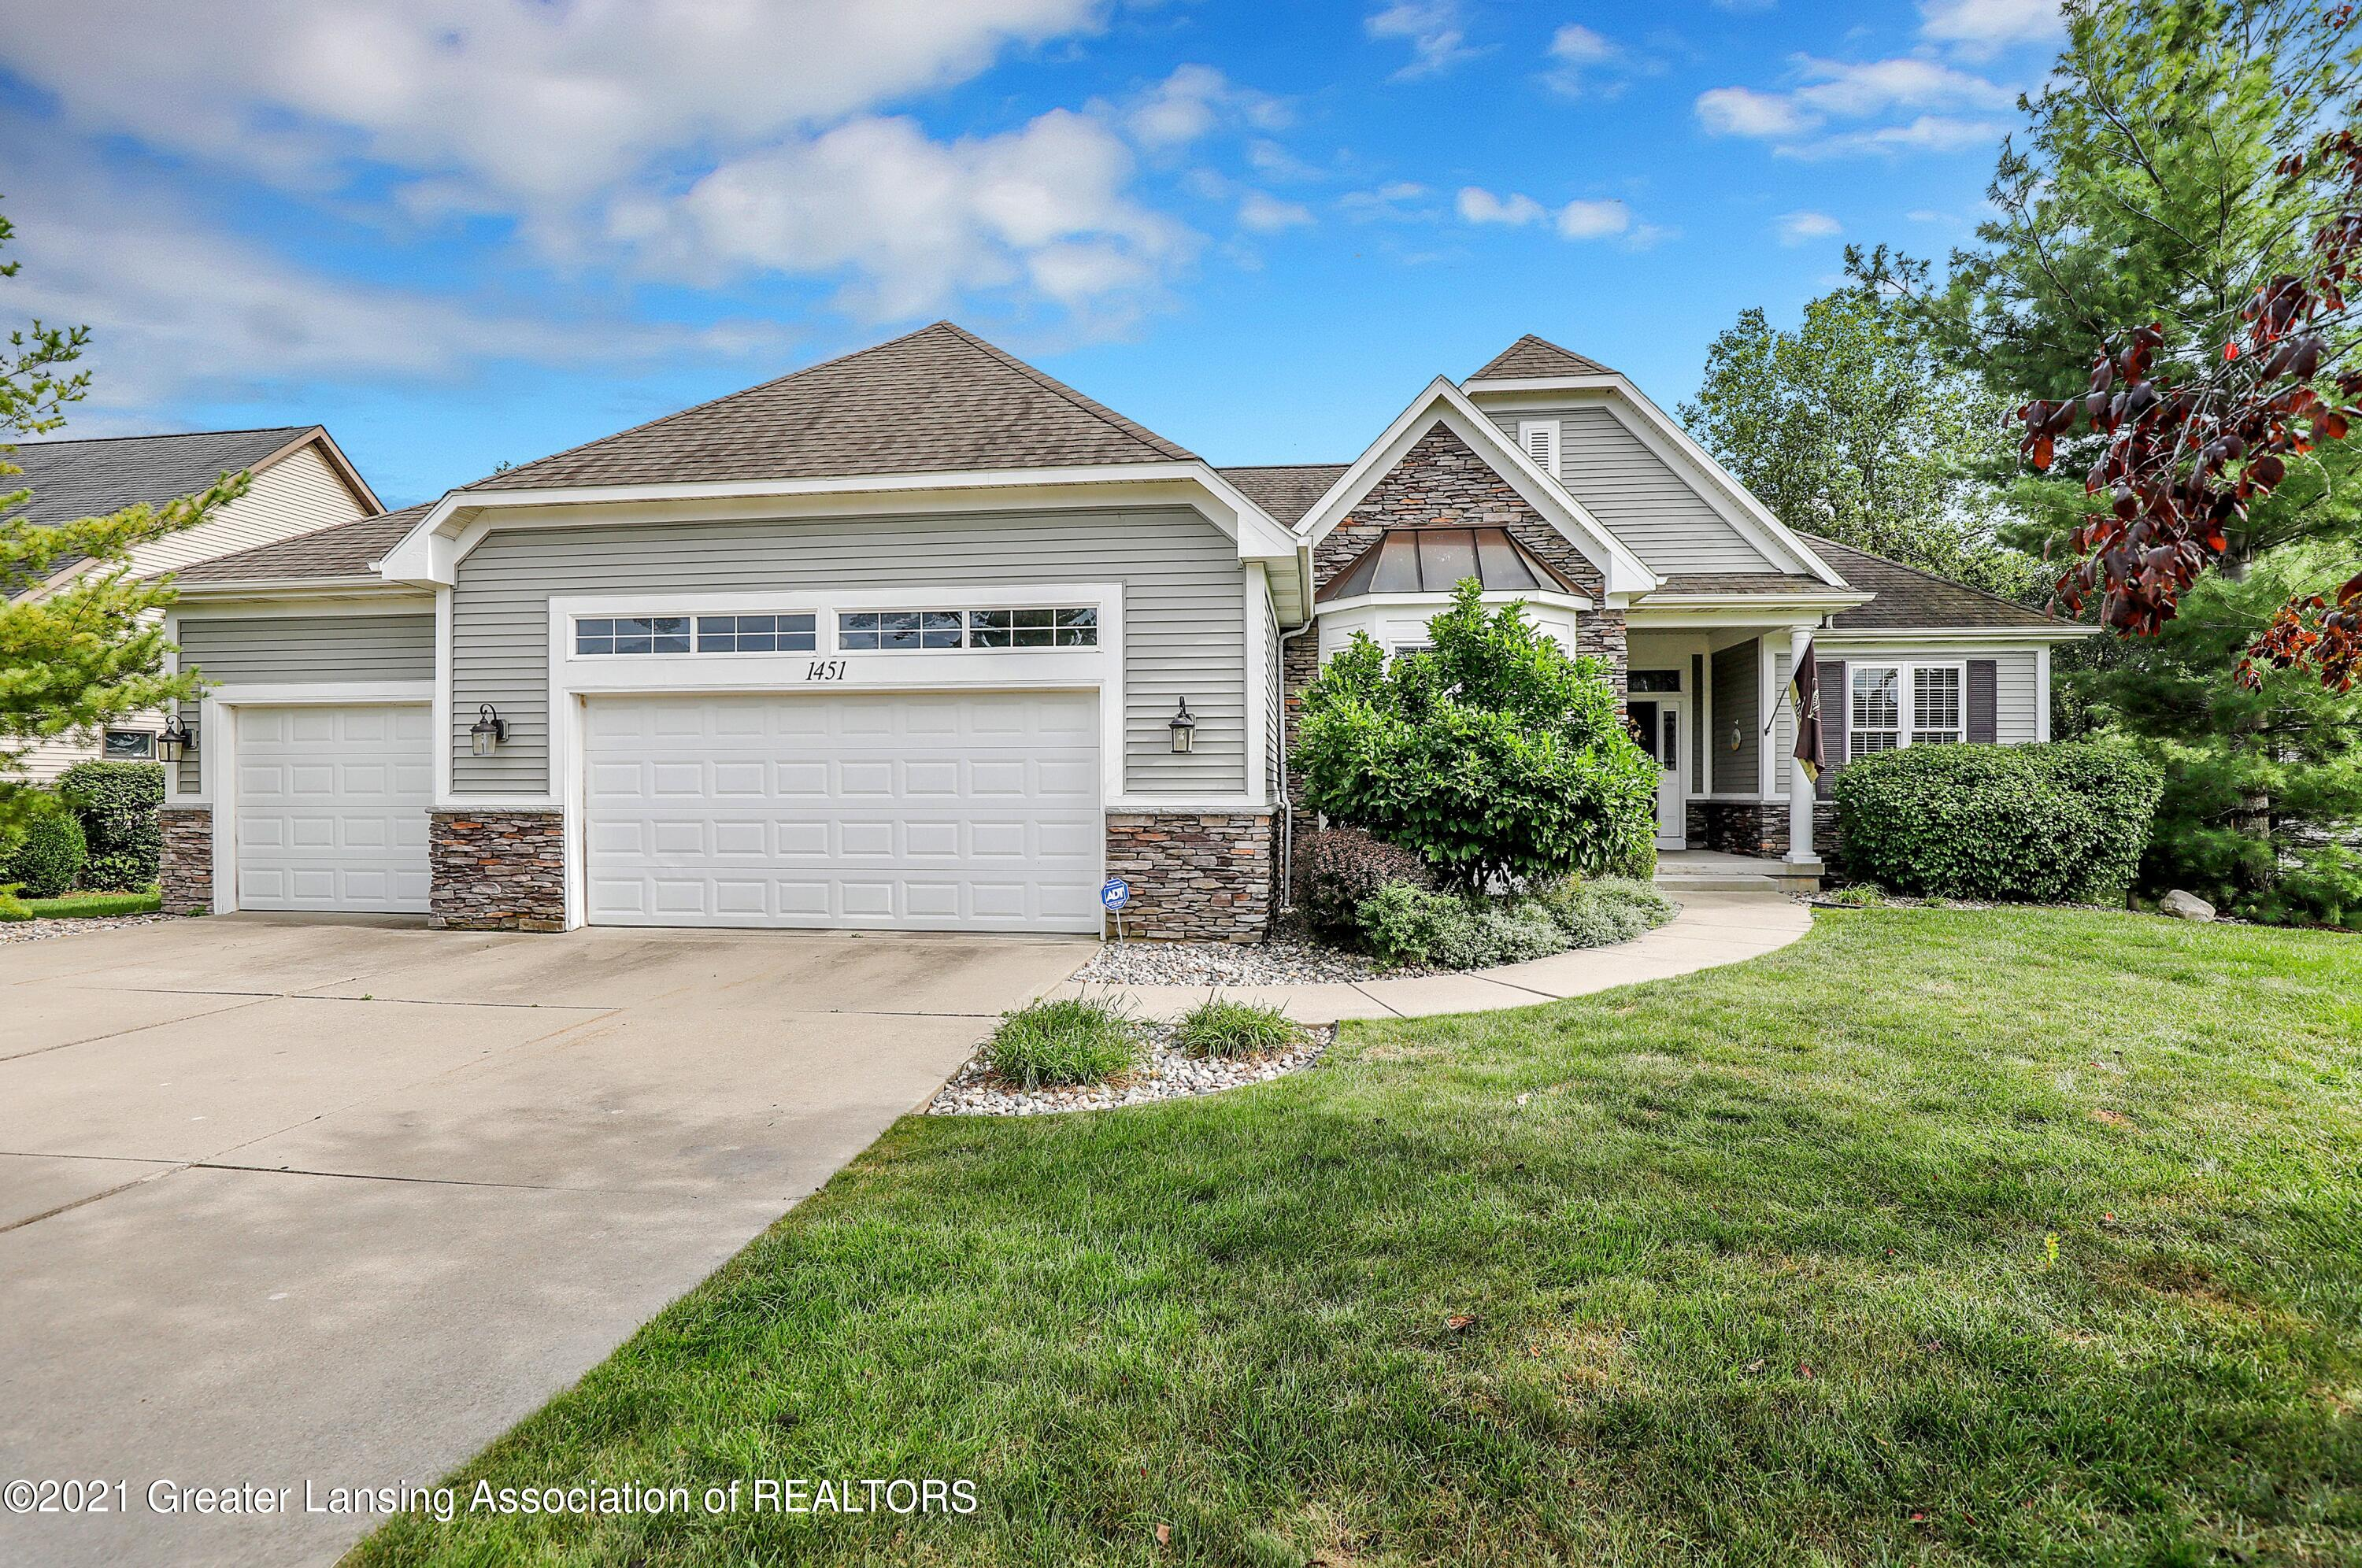 1451 Wellman Rd - Front of House - 1